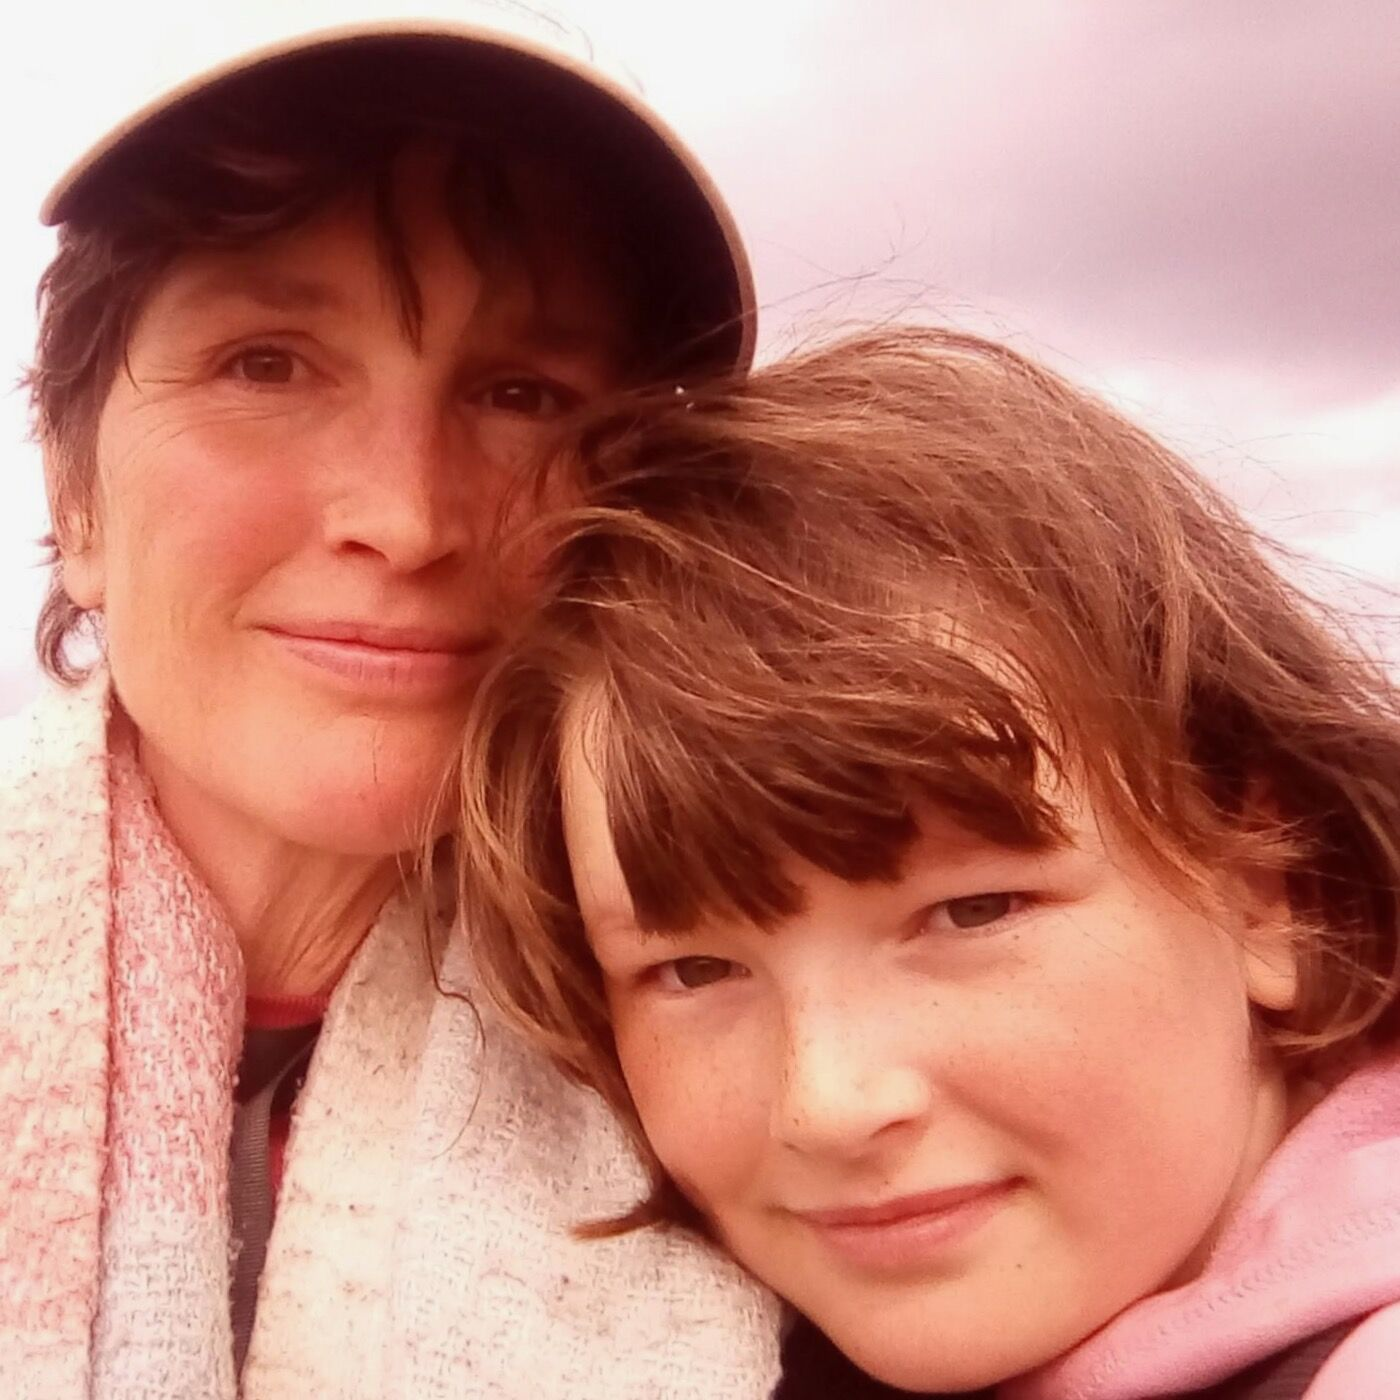 Parenting with Rheumatoid Arthritis, proud moments and fitting on a potty